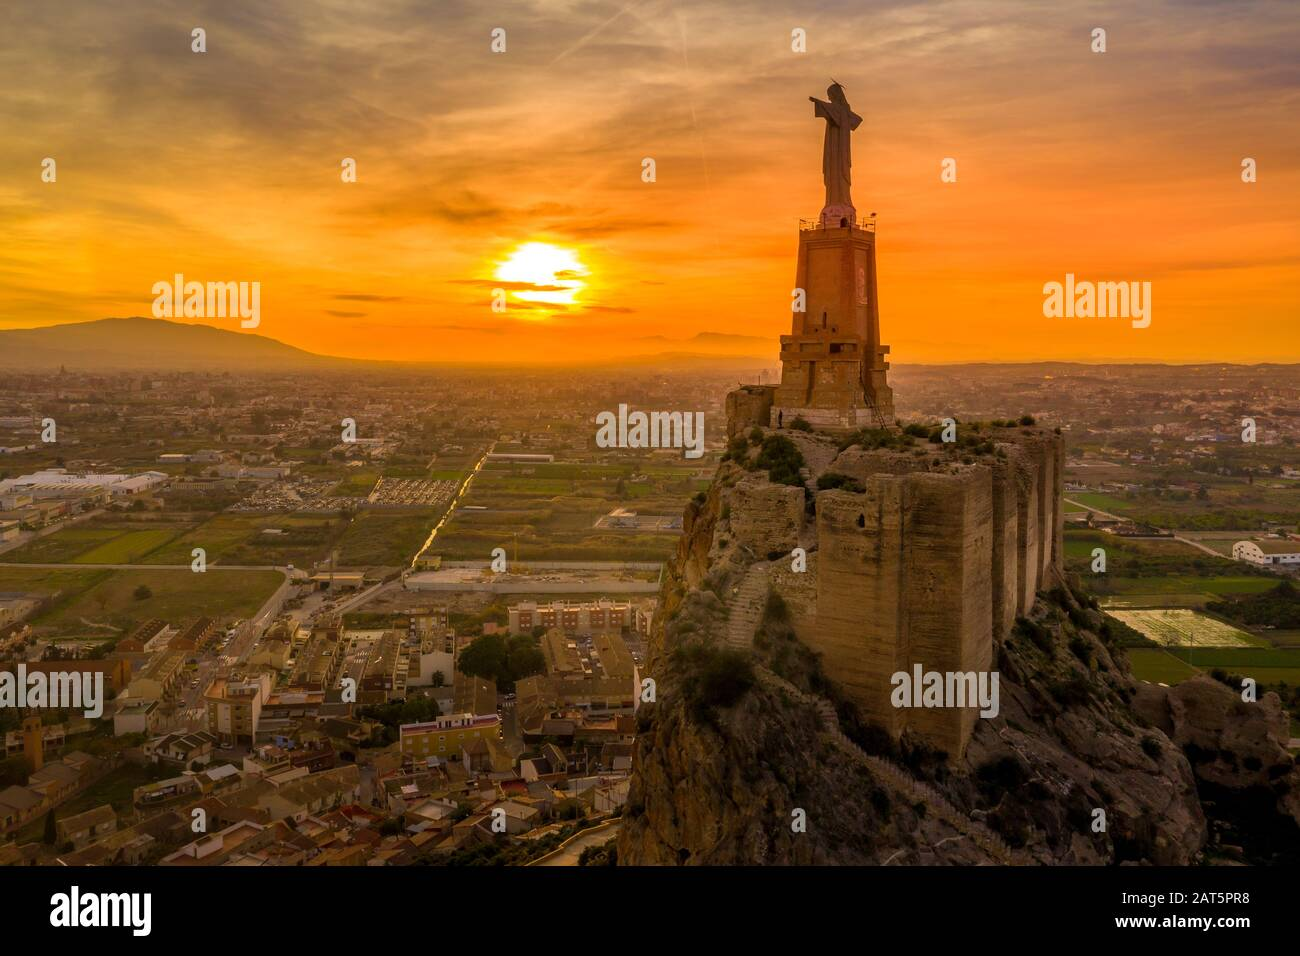 Monteagudo medieval castle ruin twelve rectangular towers circling the hilltop and the sacred heart of Jesus Christ statue on top near Murcia Spain Stock Photo